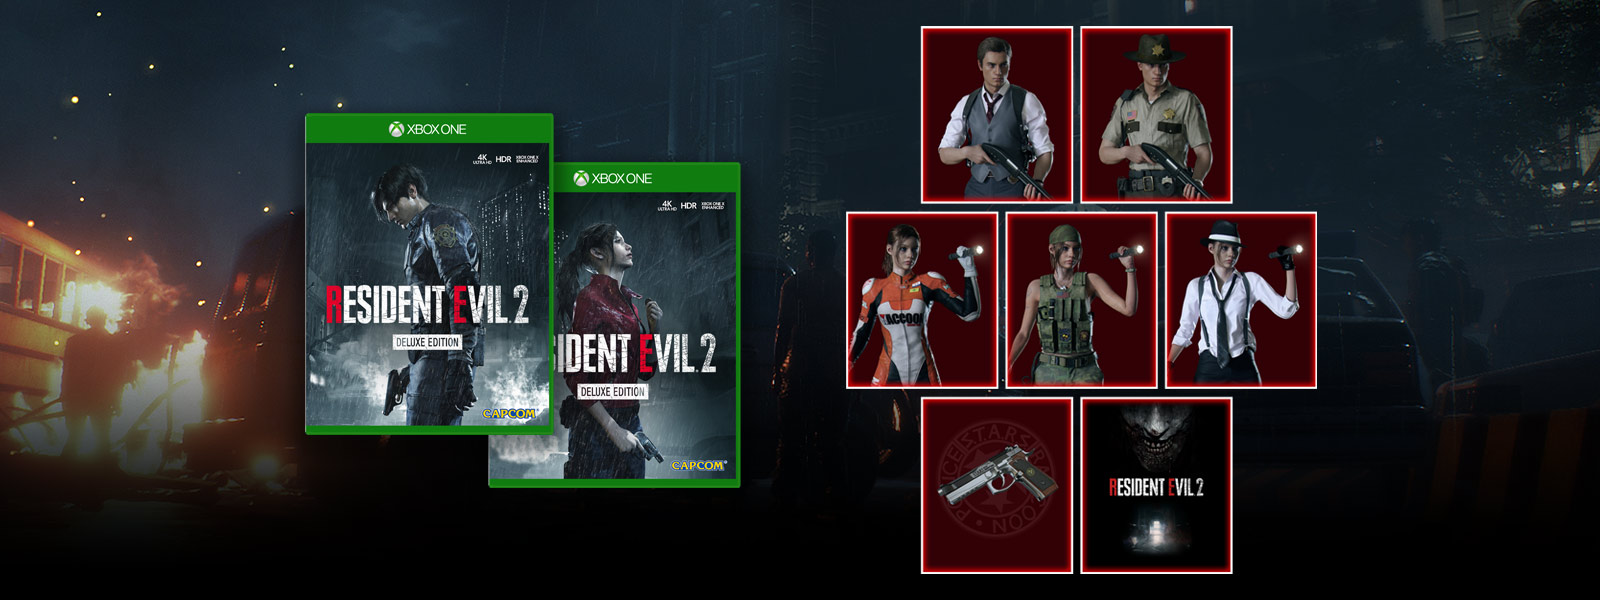 Resident Evil 2 For Xbox One Xbox